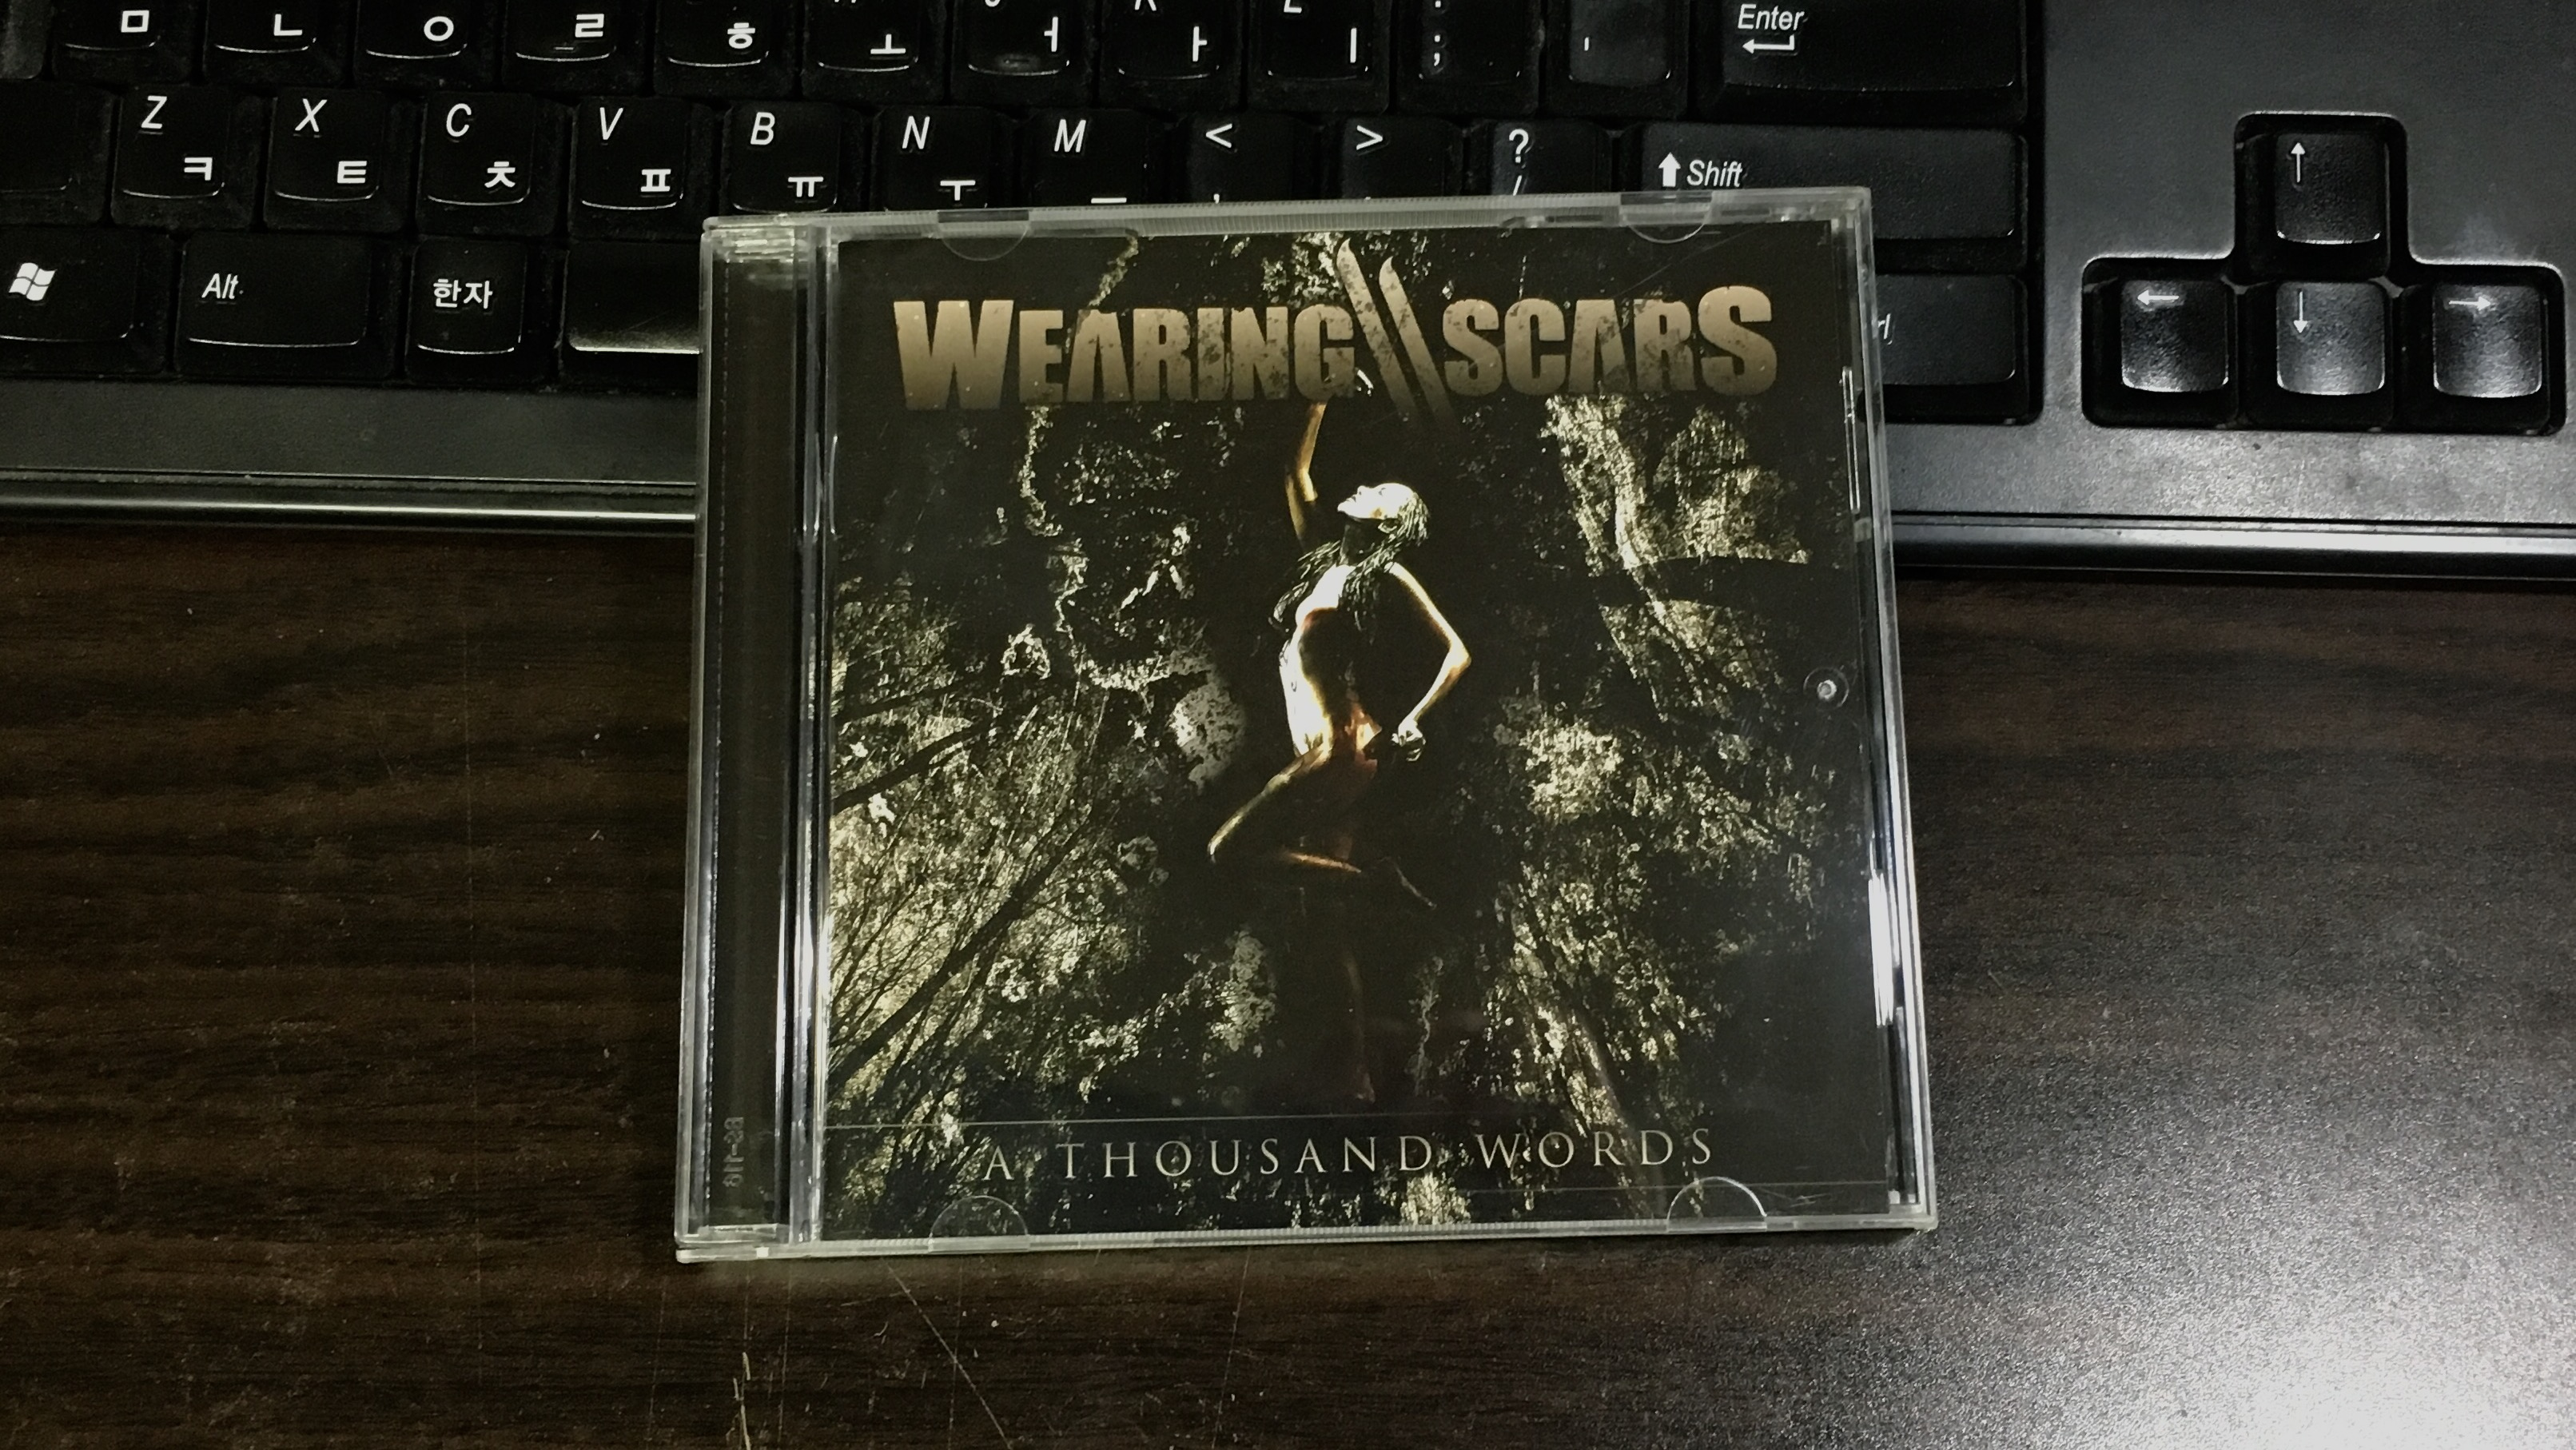 A Thousand Words - Wearing Scars / 2015